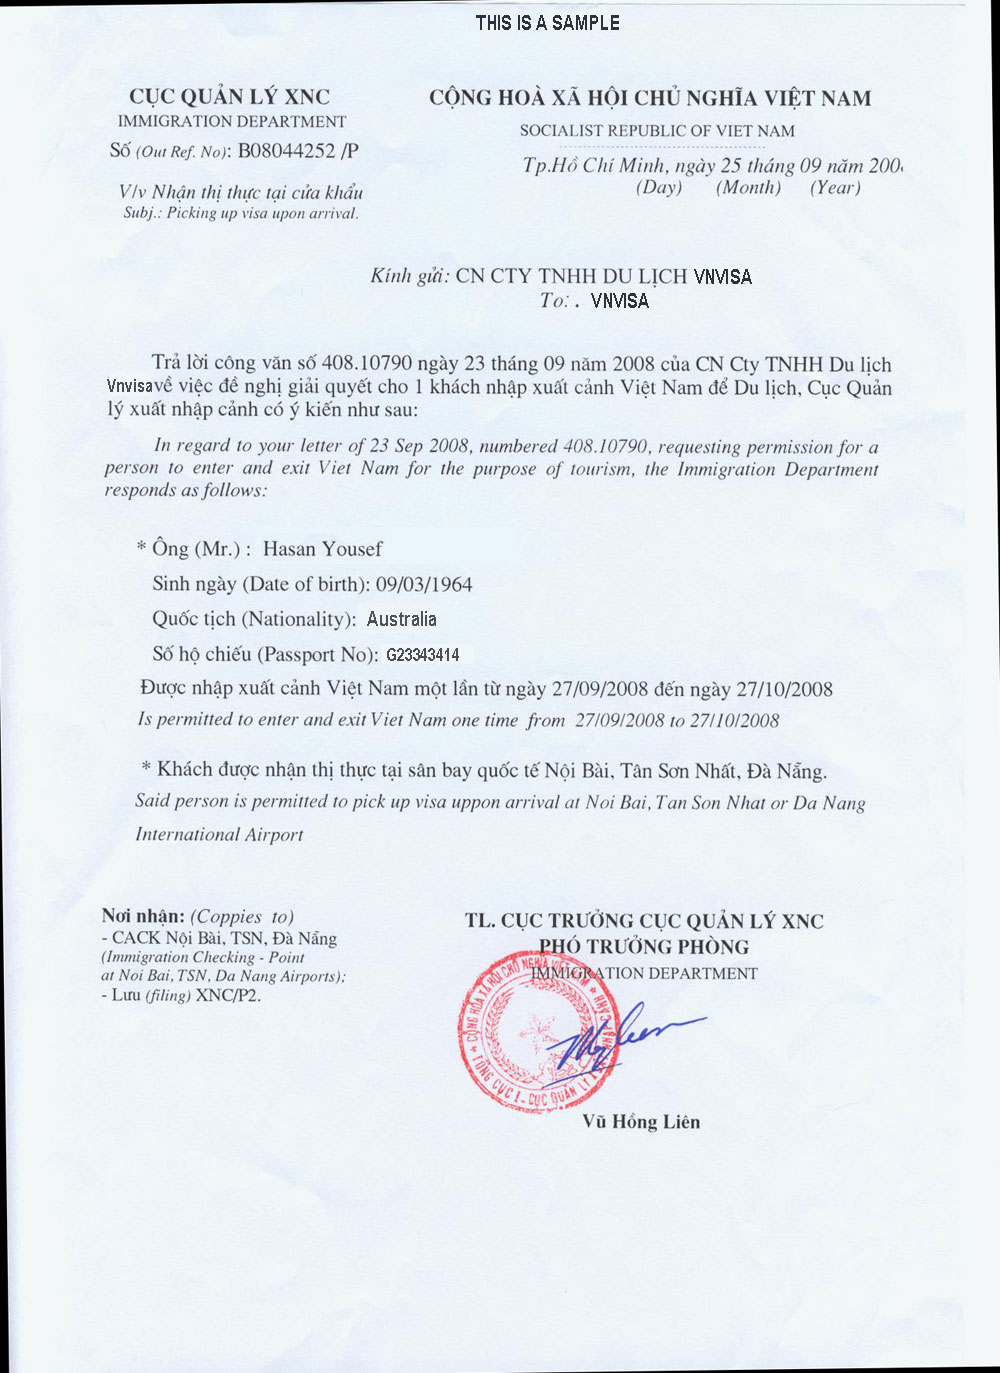 Application form for issuance of visa recommendation letter for application form for issuance of visa recommendation letter for business tour mediafiles thecheapjerseys Choice Image